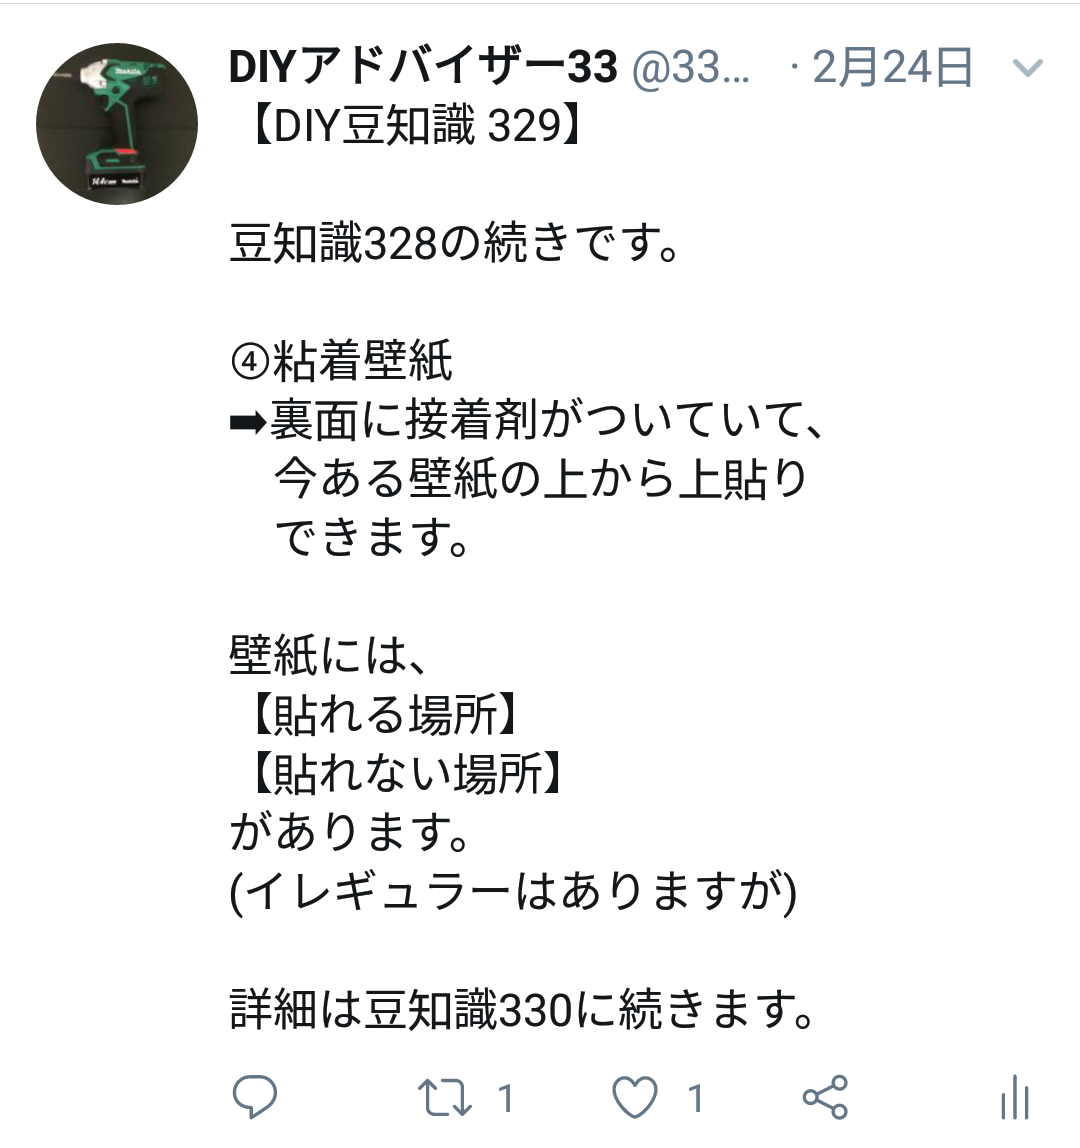 f:id:DIY33:20190410063059p:plain